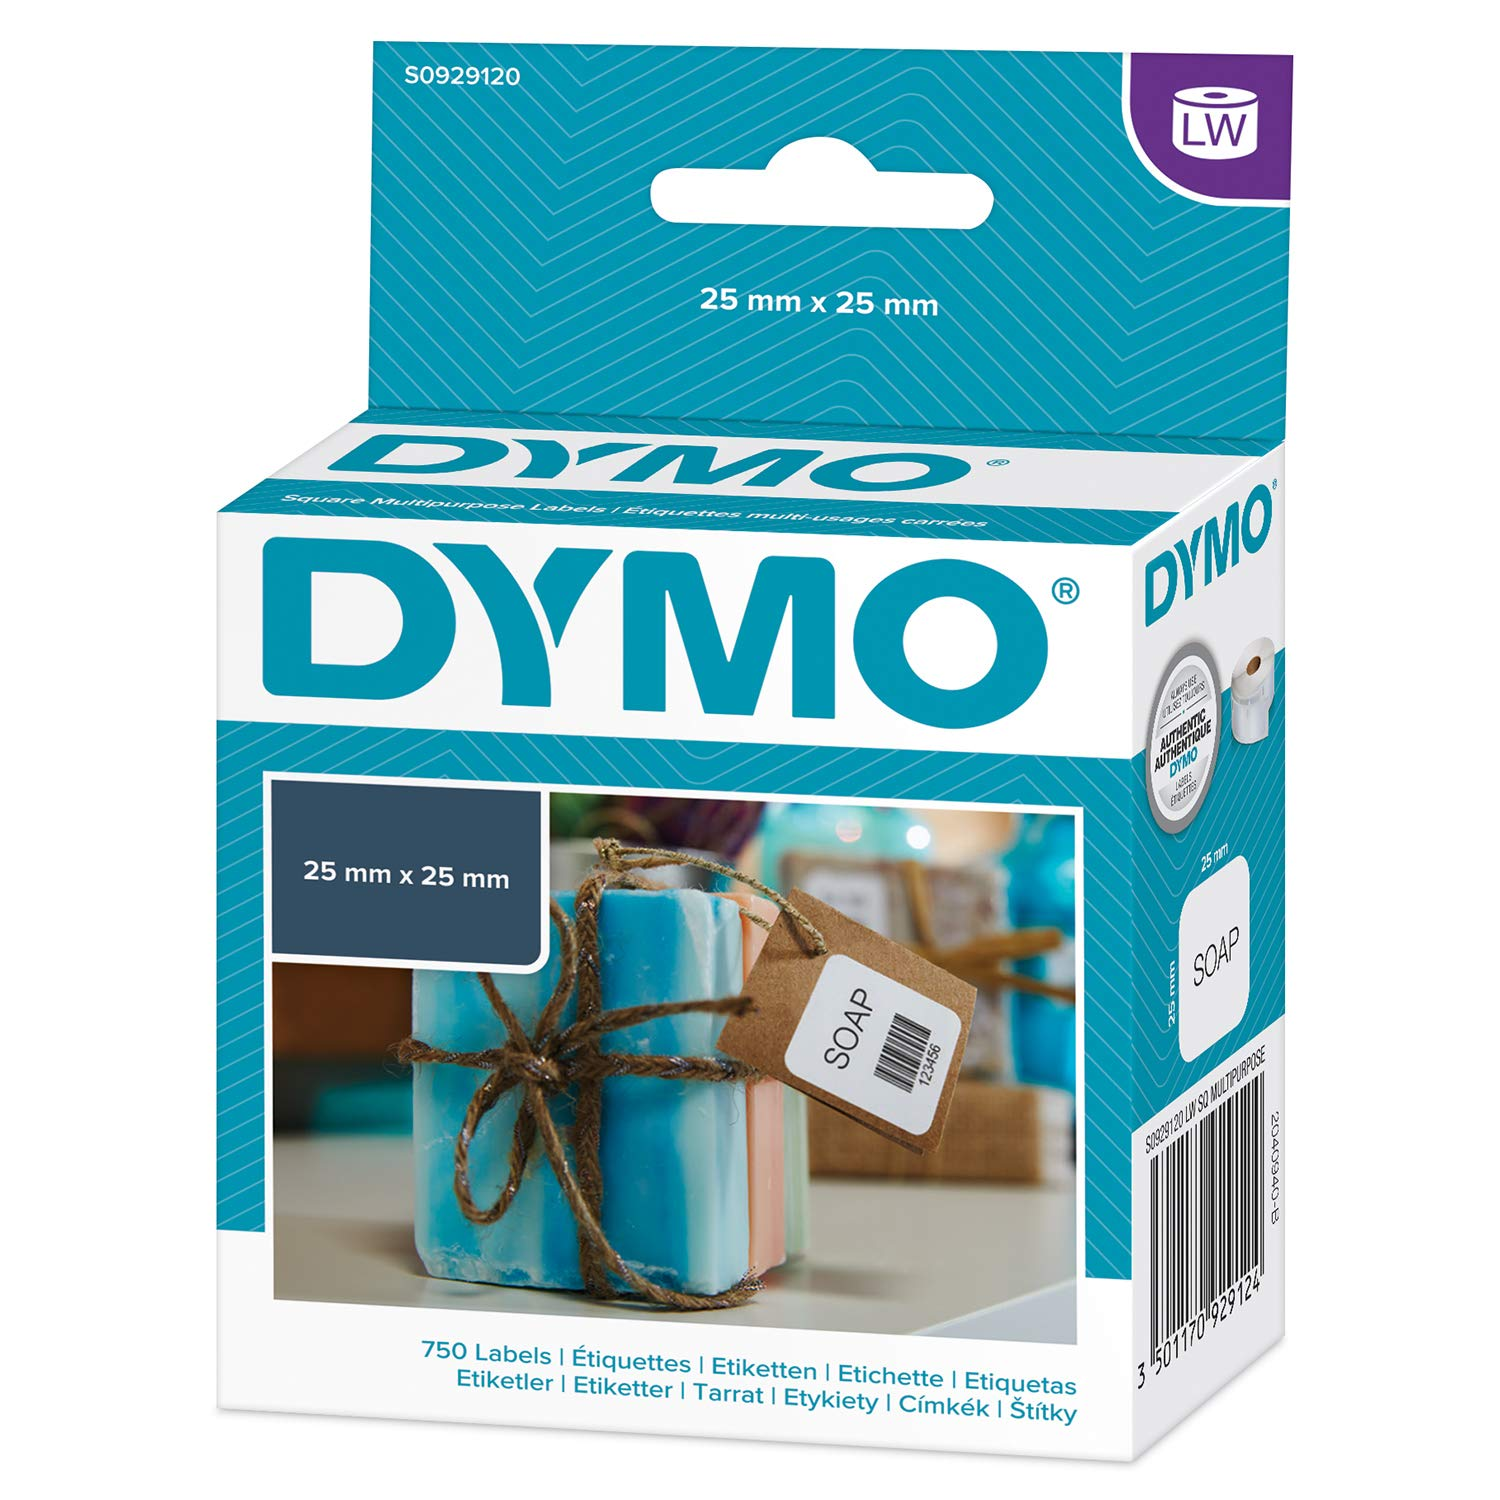 Dymo 25 mm x 25 mm labels